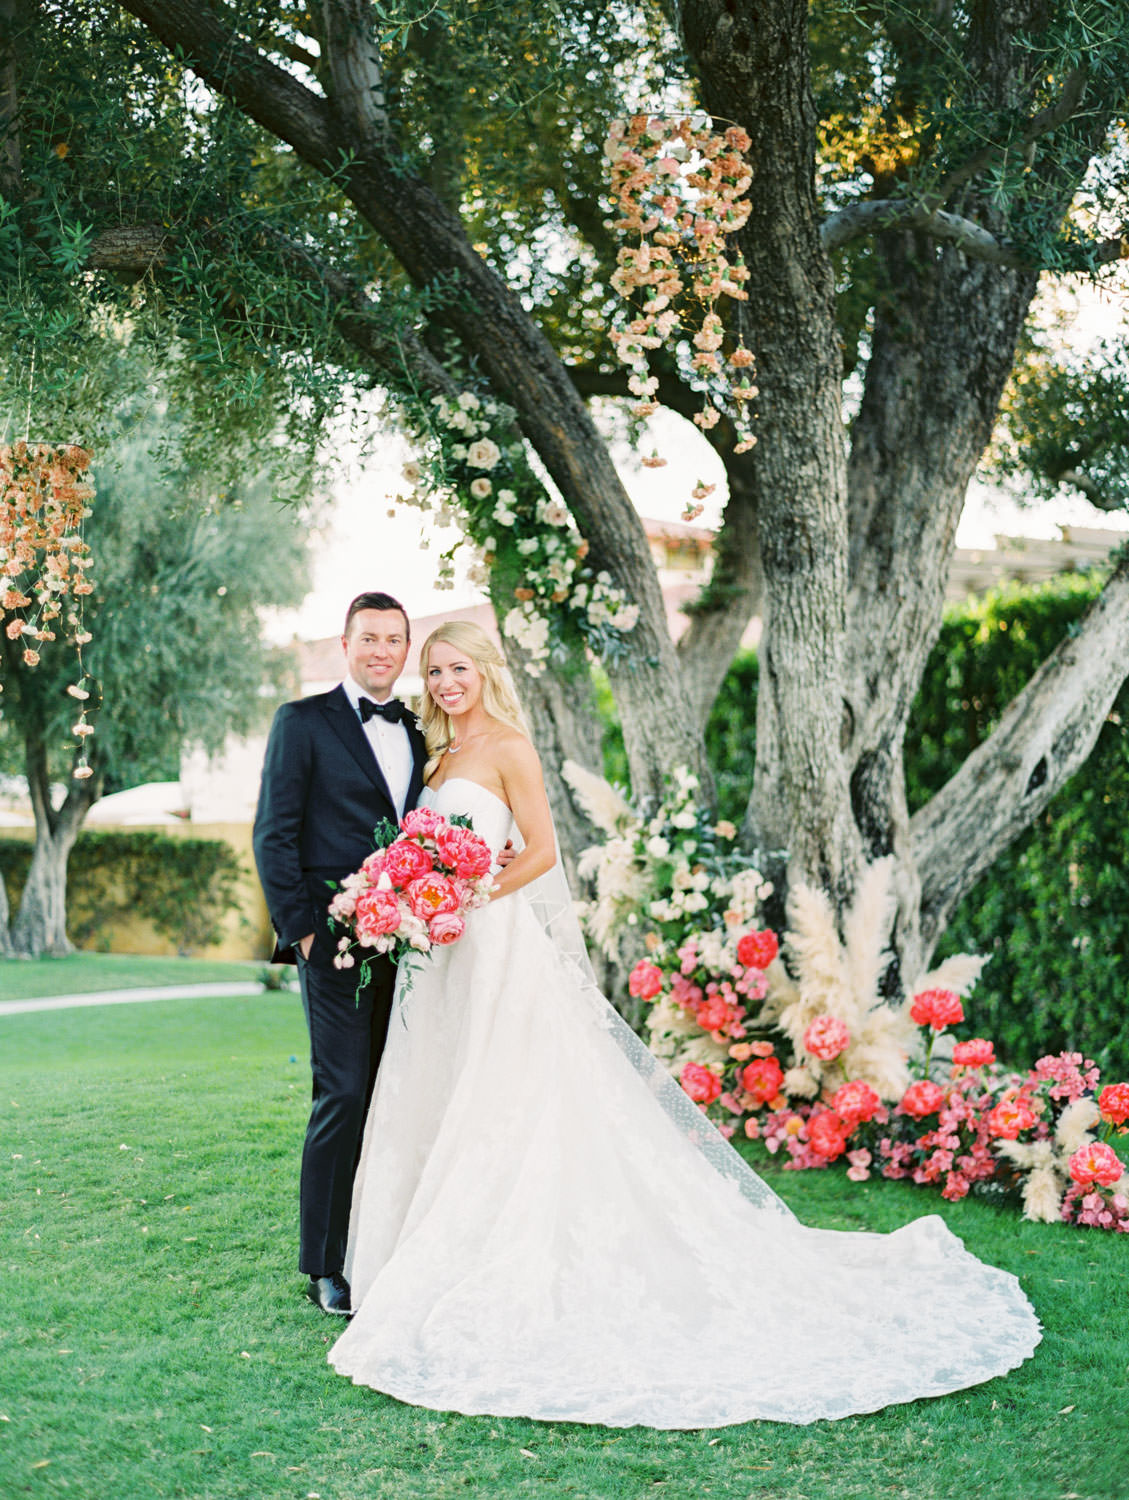 Bride and groom smiling at the camera. Bride in lace Watters gown holding a pink bouquet. Large tree with hanging floral arrangements and pink peonies and pampas grass spiraling up the trunk. Miramonte Resort ceremony on Miramonte Green. Film photography by Cavin Elizabeth.